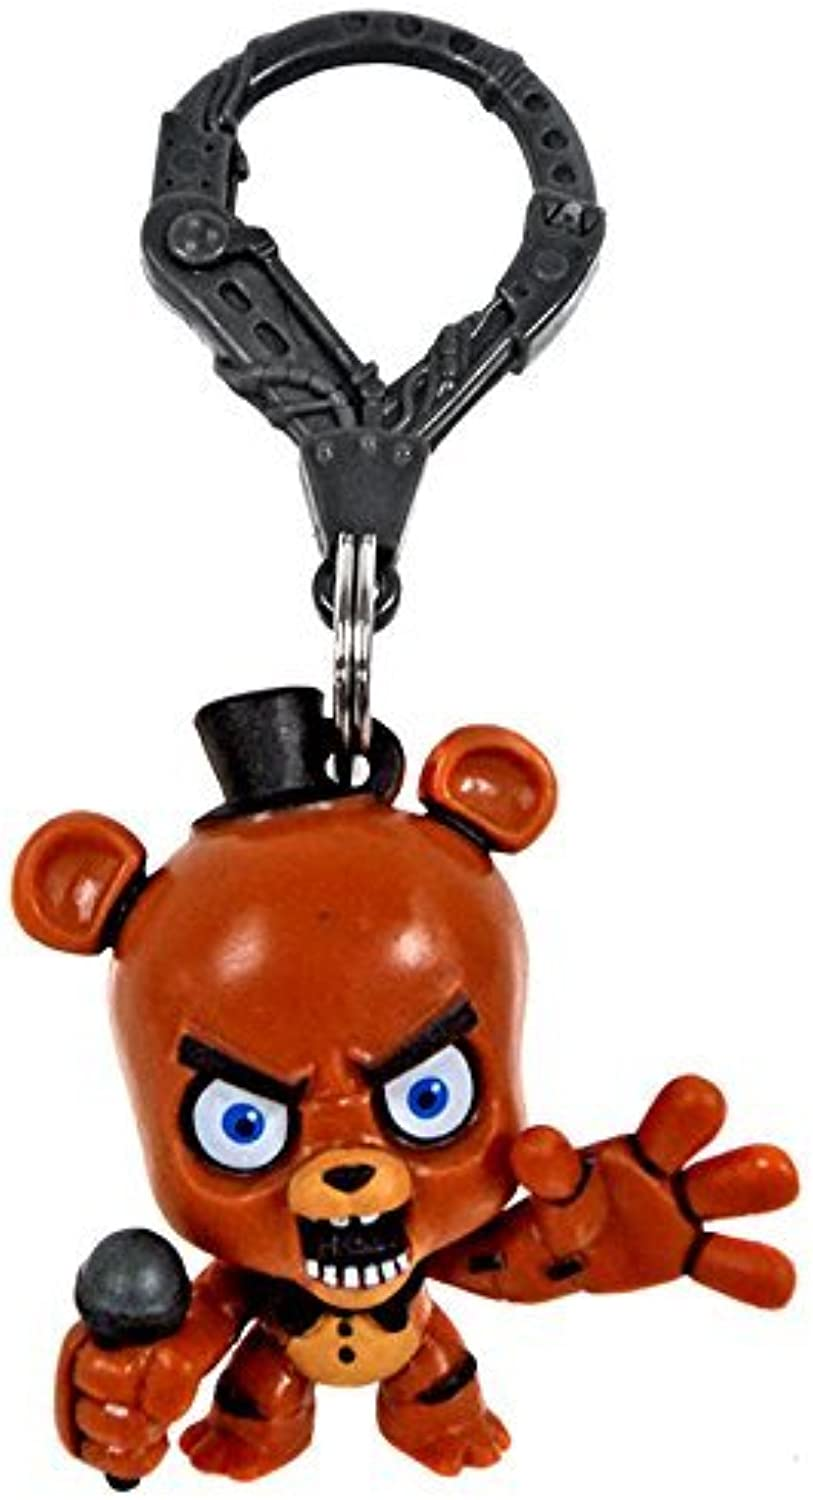 FNAF Officially Licensed Five Nights At Freddy's 3 Figure Hangers Freddy Fazbear by Five Nights at Freddy's